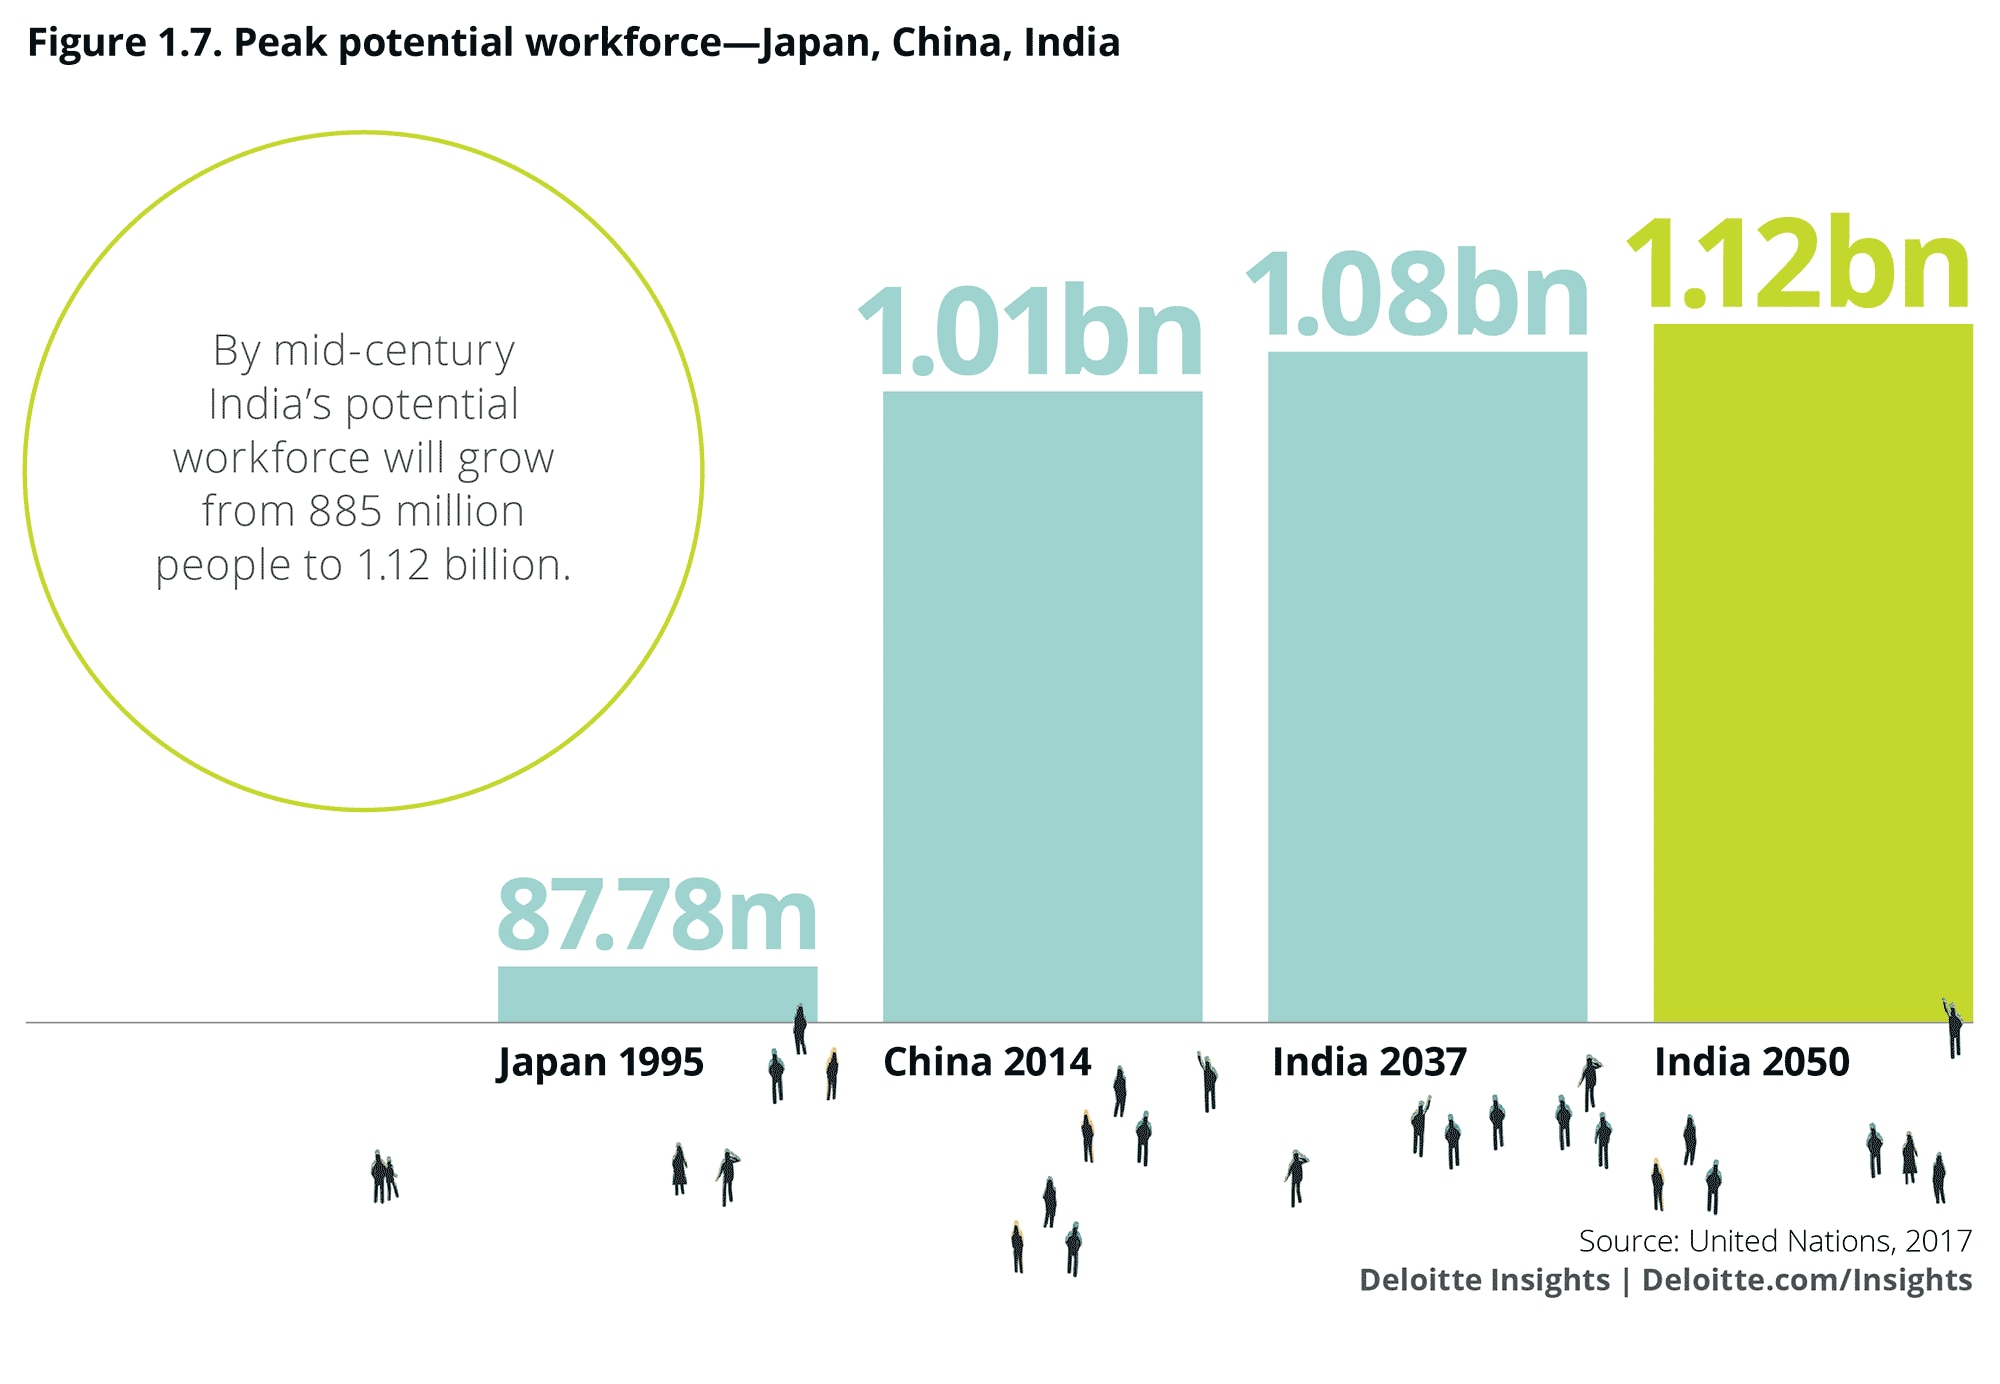 Peak potential workforce: Japan, China, India